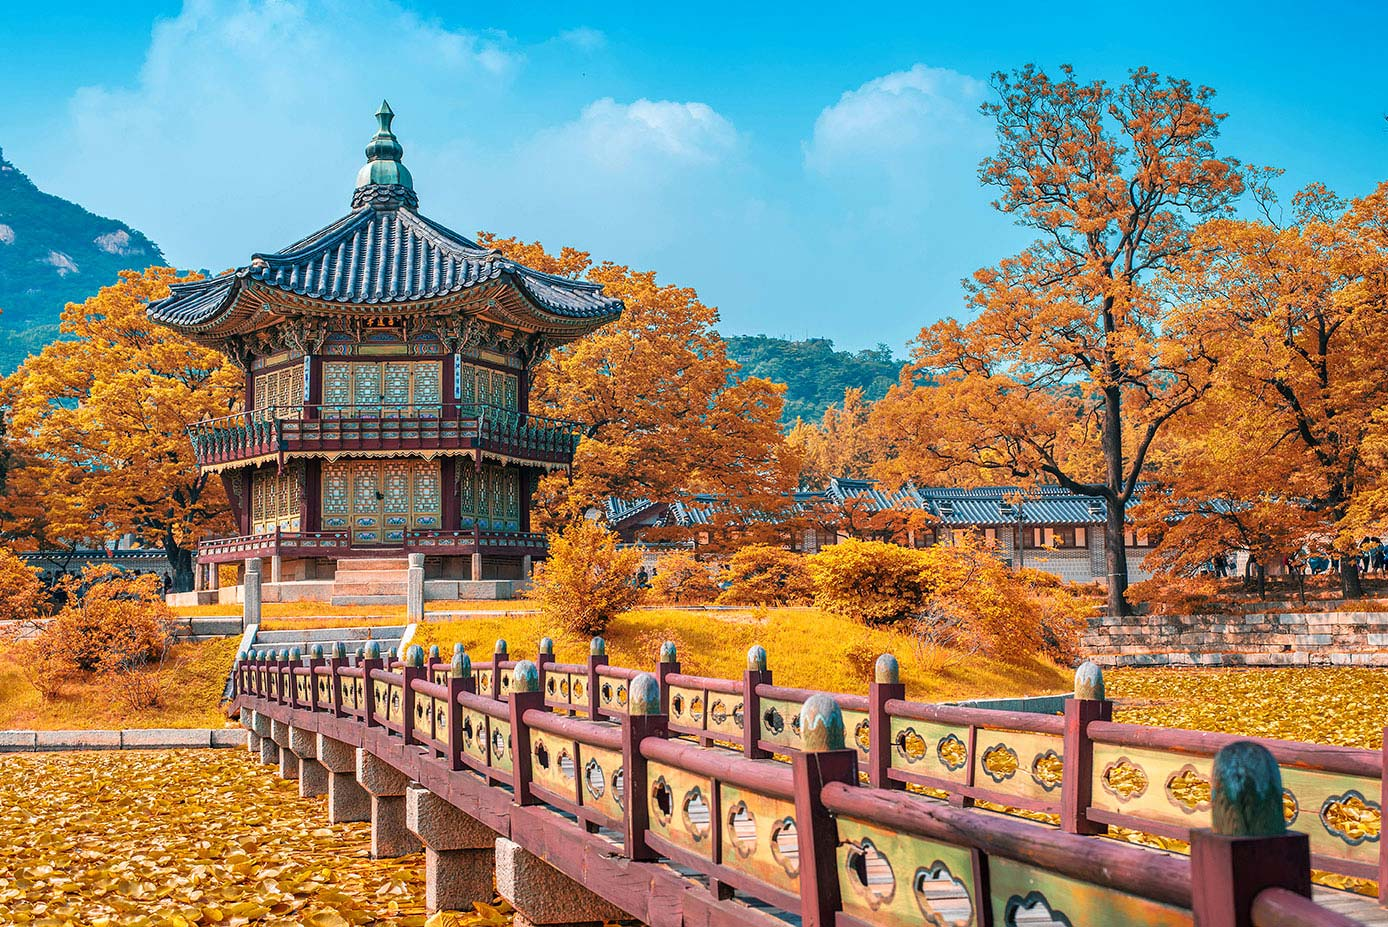 Traditional bridge surrounded by orange and yellow foliage in Seoul